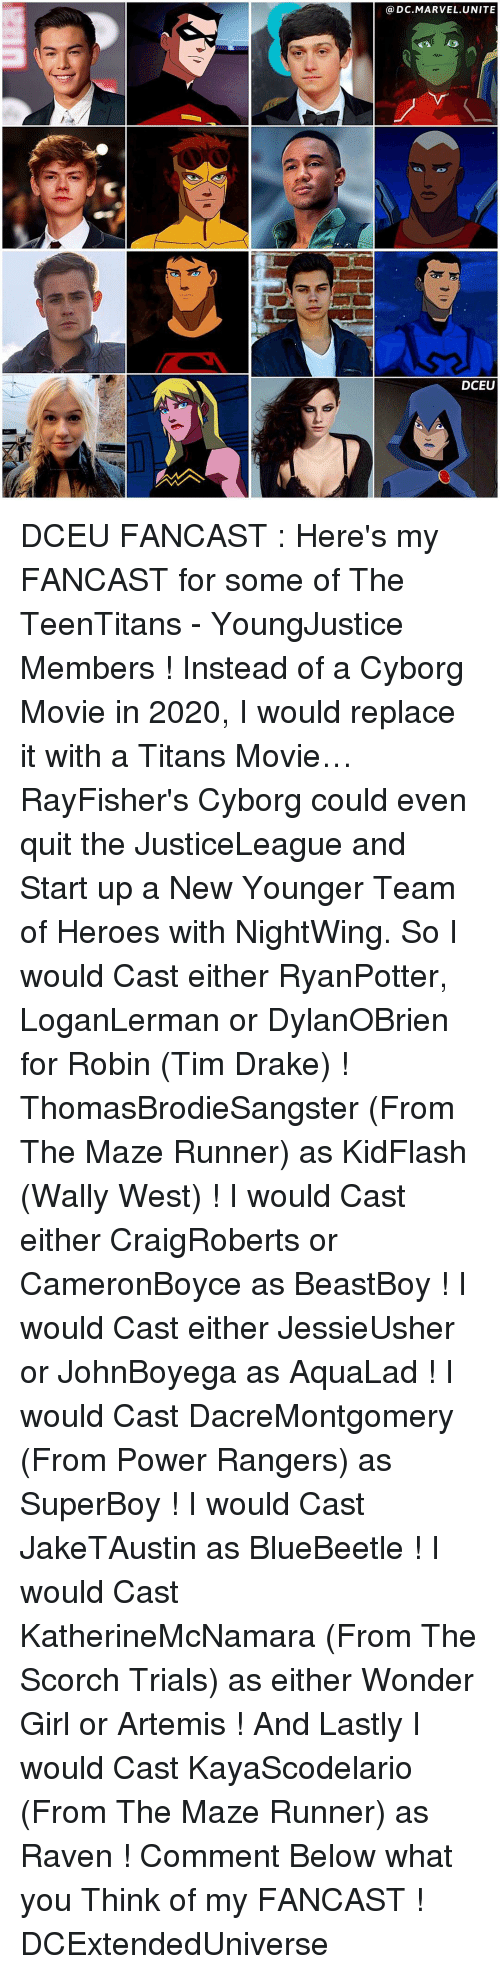 ravenous: DC MARVEL UNITE  DCEU DCEU FANCAST : Here's my FANCAST for some of The TeenTitans - YoungJustice Members ! Instead of a Cyborg Movie in 2020, I would replace it with a Titans Movie… RayFisher's Cyborg could even quit the JusticeLeague and Start up a New Younger Team of Heroes with NightWing. So I would Cast either RyanPotter, LoganLerman or DylanOBrien for Robin (Tim Drake) ! ThomasBrodieSangster (From The Maze Runner) as KidFlash (Wally West) ! I would Cast either CraigRoberts or CameronBoyce as BeastBoy ! I would Cast either JessieUsher or JohnBoyega as AquaLad ! I would Cast DacreMontgomery (From Power Rangers) as SuperBoy ! I would Cast JakeTAustin as BlueBeetle ! I would Cast KatherineMcNamara (From The Scorch Trials) as either Wonder Girl or Artemis ! And Lastly I would Cast KayaScodelario (From The Maze Runner) as Raven ! Comment Below what you Think of my FANCAST ! DCExtendedUniverse